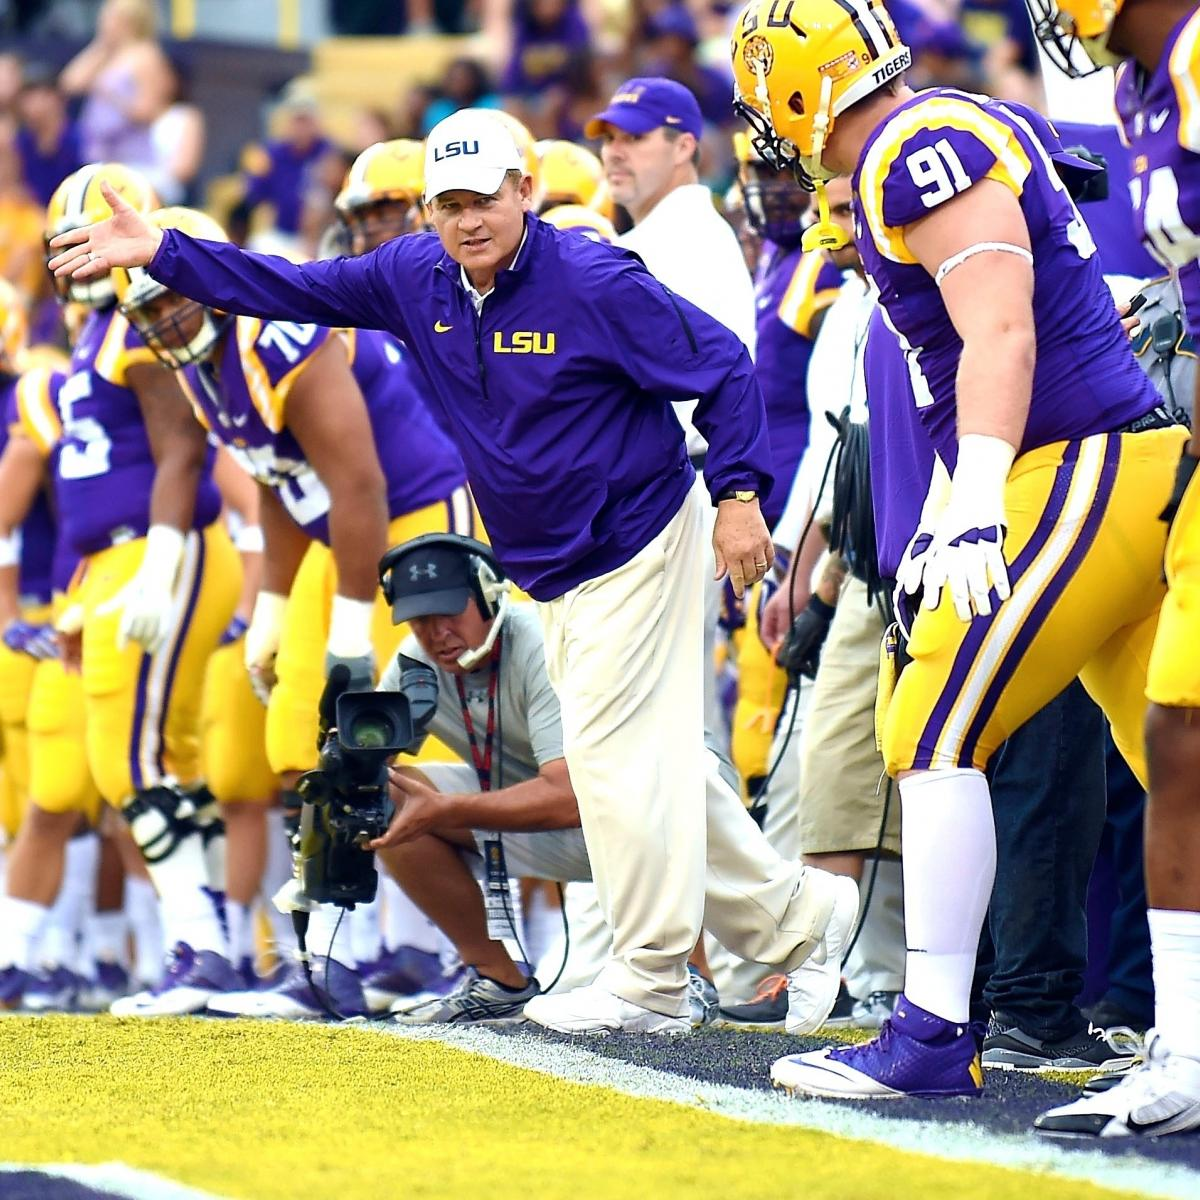 Mark Blaudschun's Blitz: Beware the Sleeping Tigers of LSU